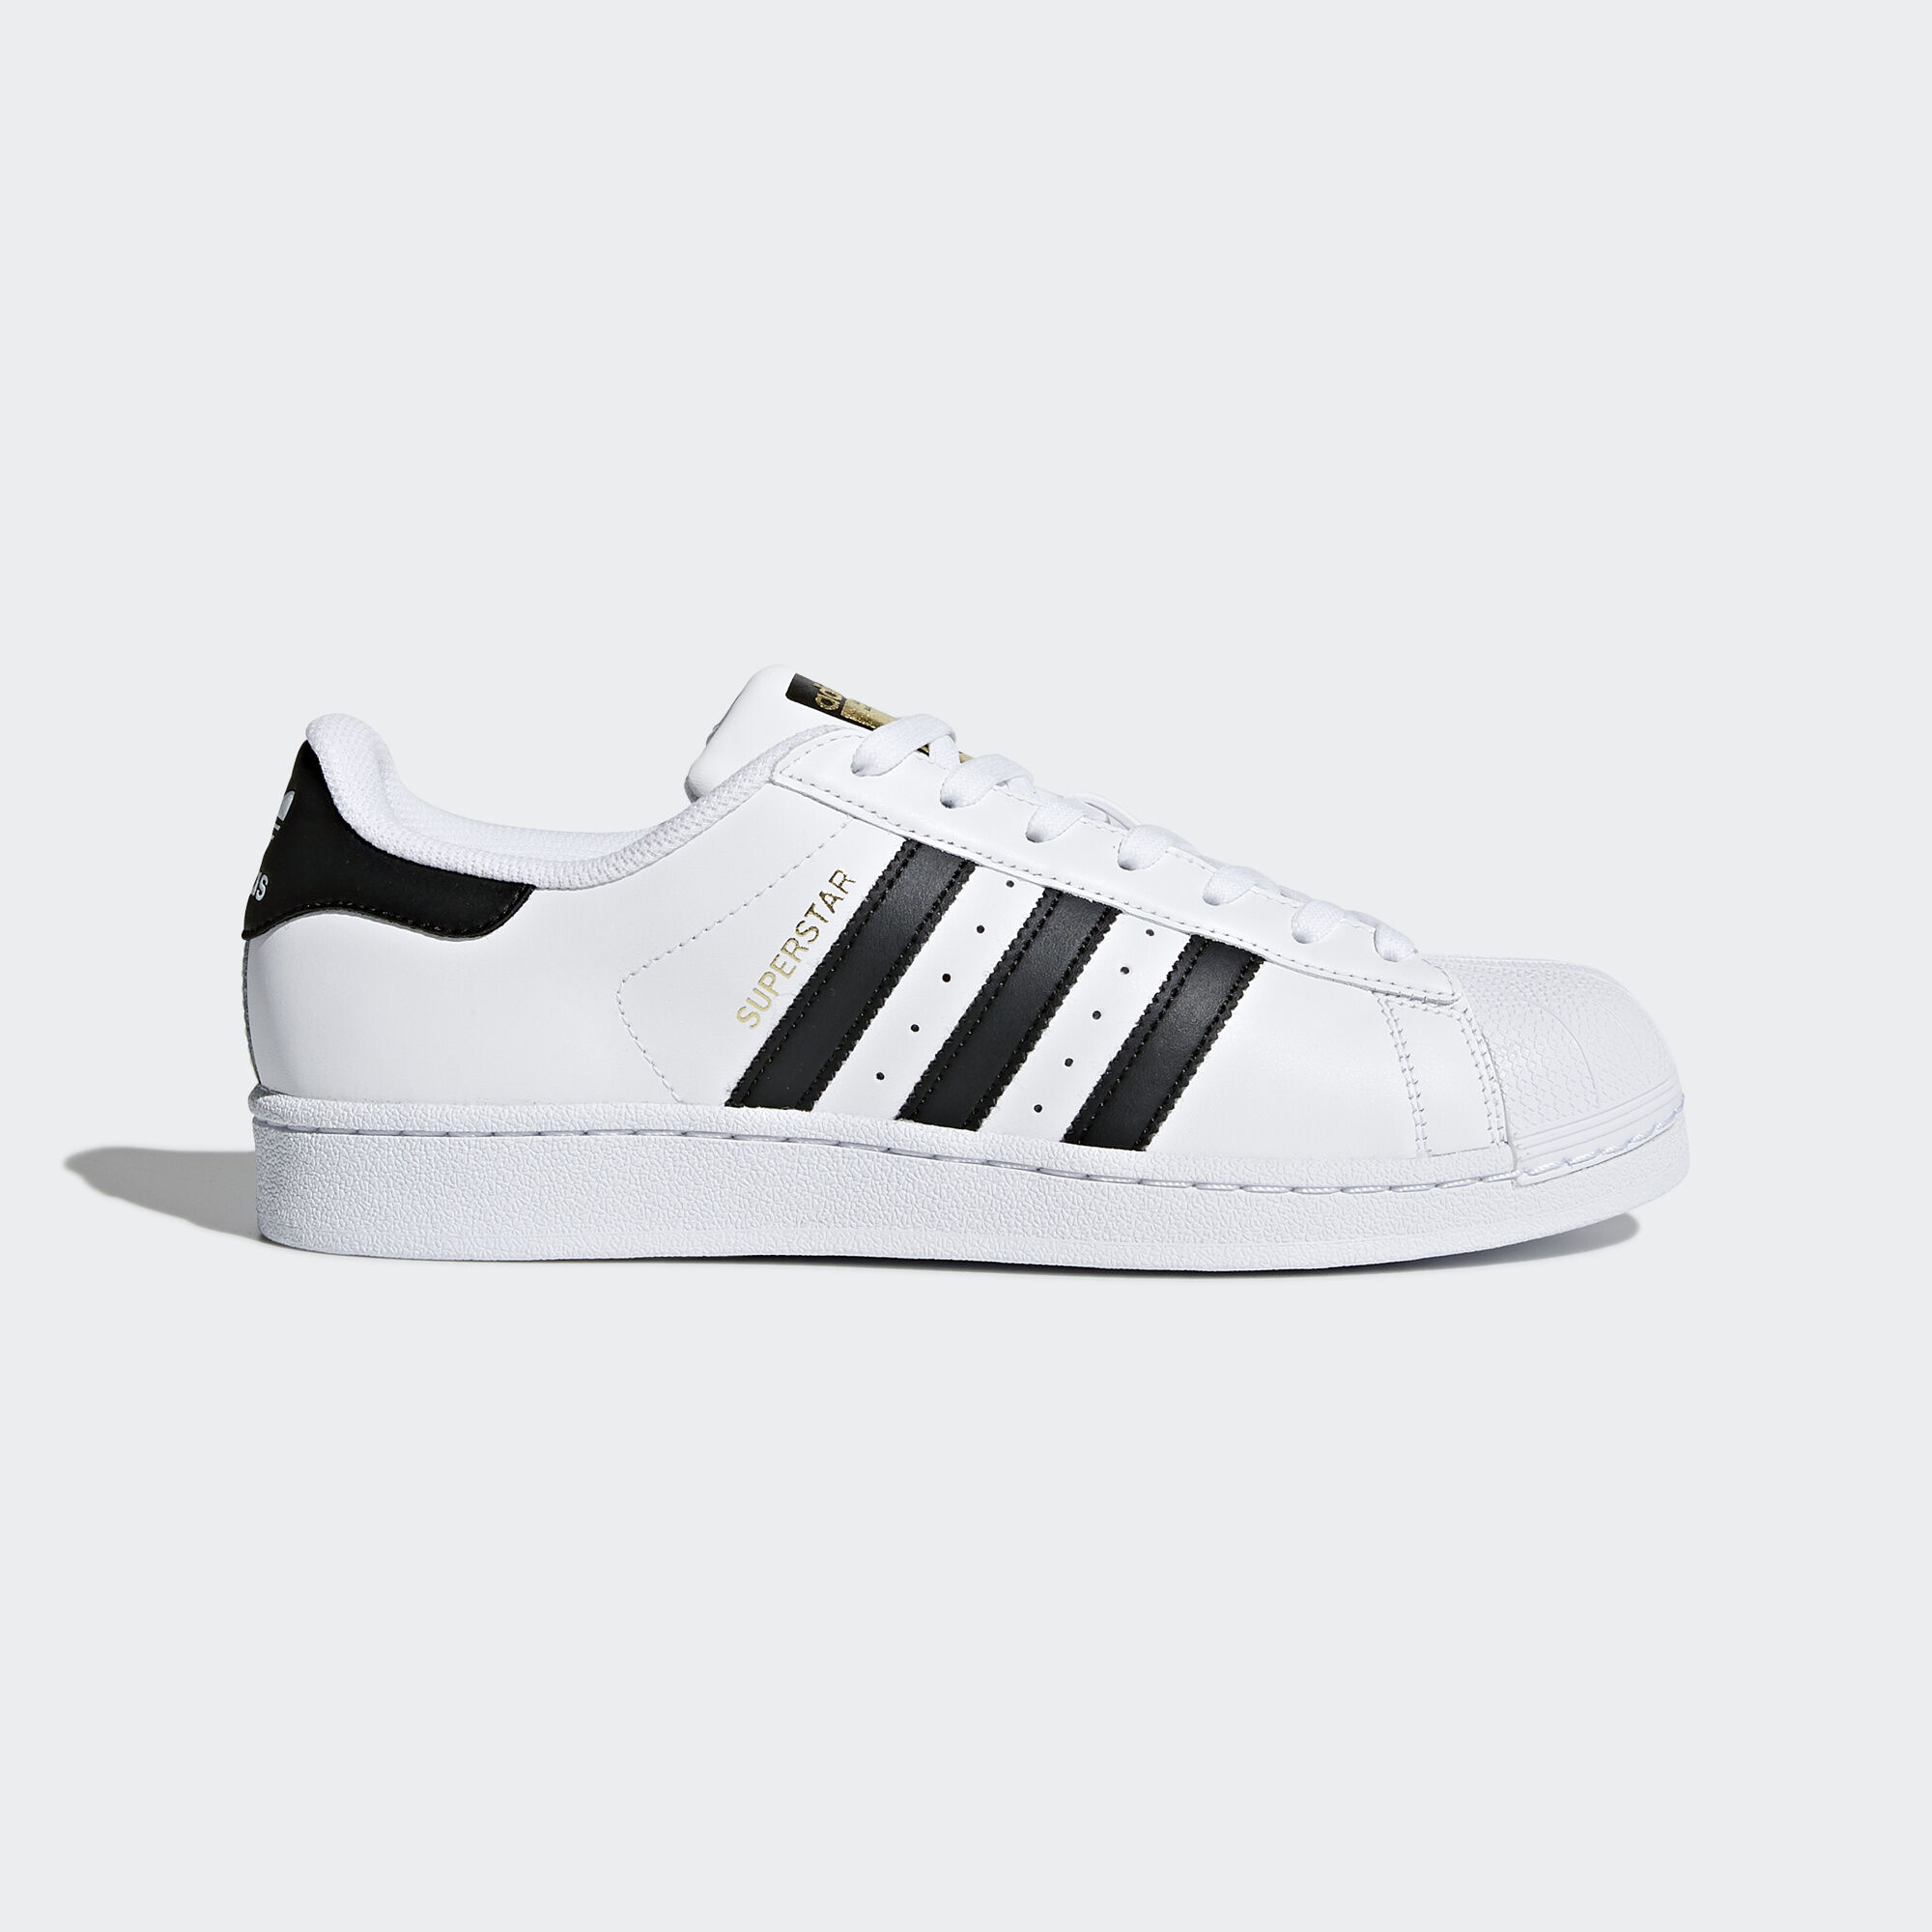 Superstar Adidas Shoes Womens